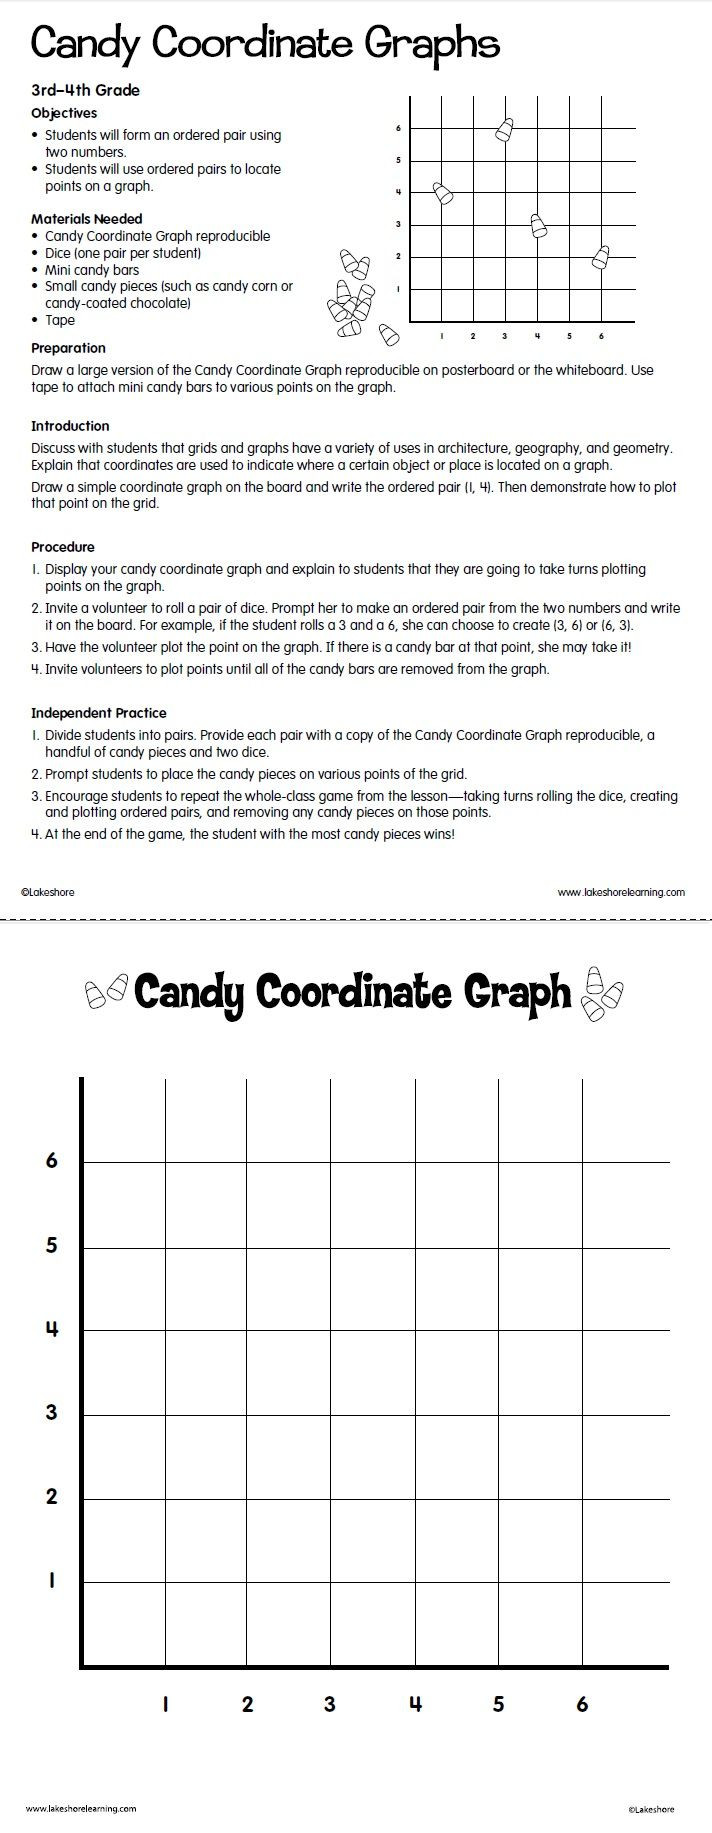 Ordered Pairs Worksheet 5th Grade Candy Coordinate Graphs Lesson Plan From Lakeshore Learning